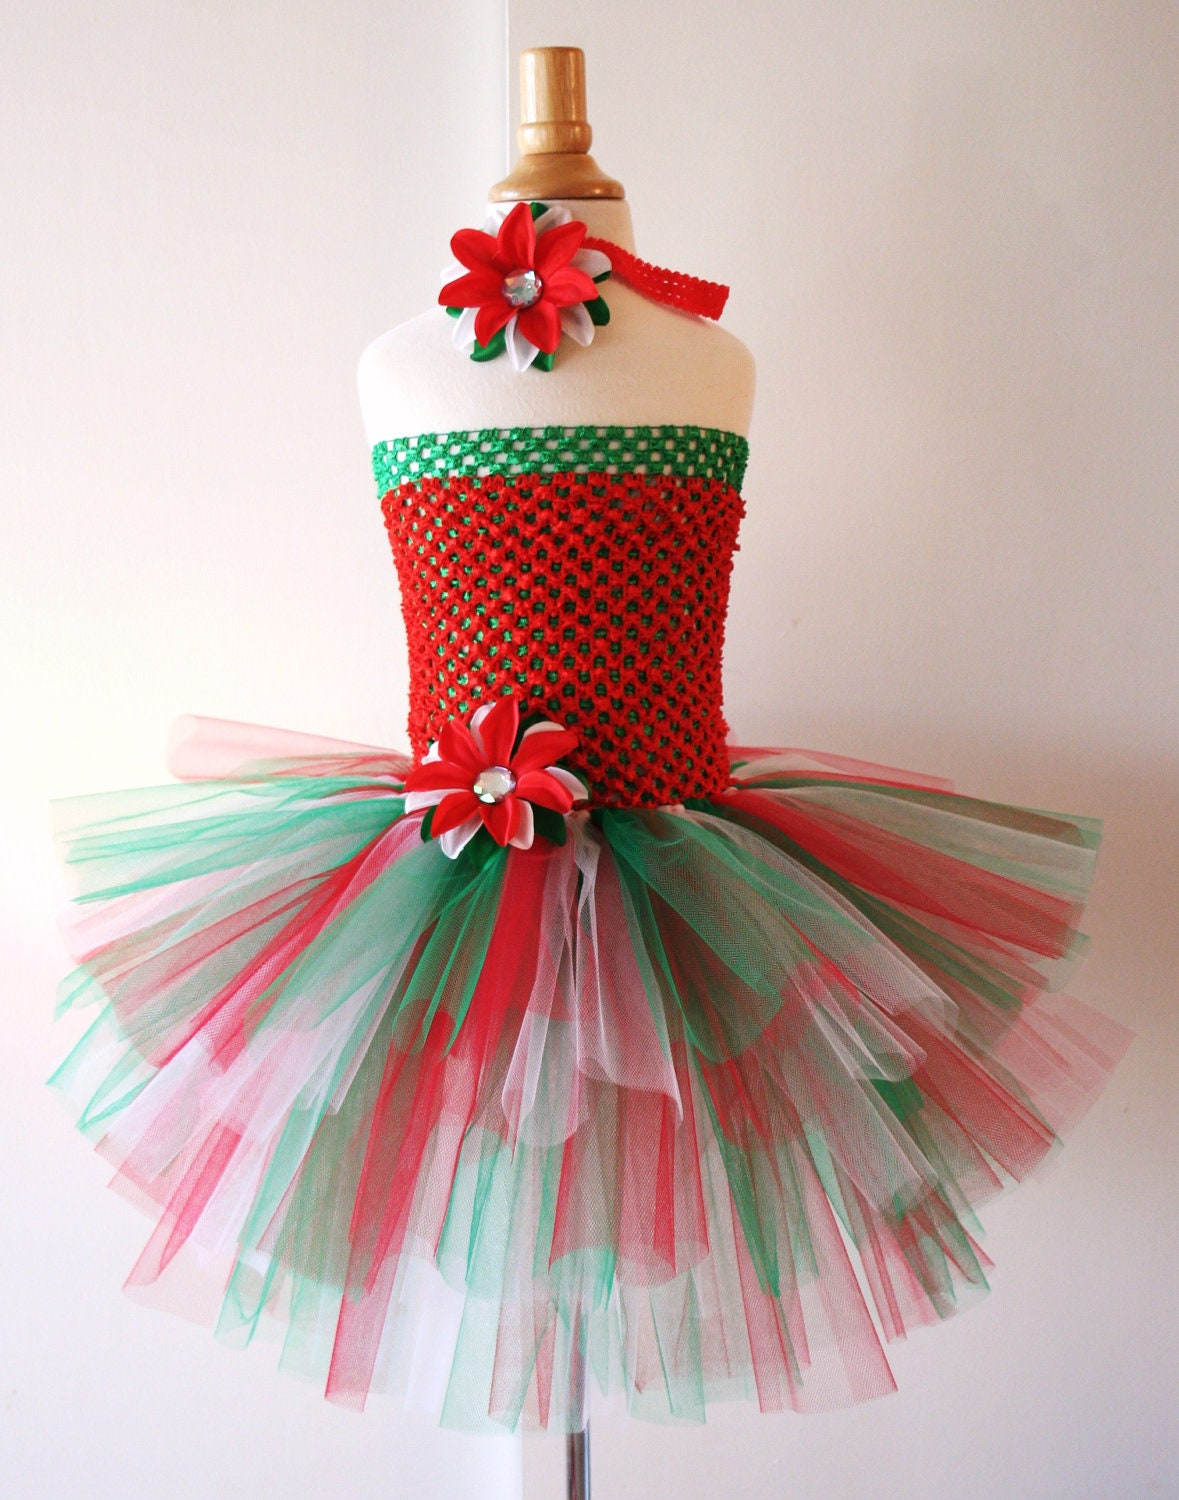 Christmas Santa Dress, Tulle Dress, Santa Baby, Santa Tutu, Mrs Claus, Toddler Tutu Dress, Christmas Dress, Girls Christmas Dress, Holiday Baby tutu dresses Tulle dress Christmas Tutu Dress Christmas pageant 1st Christmas Christmas Costumes Children's Christmas Toddler tutu DReSS .